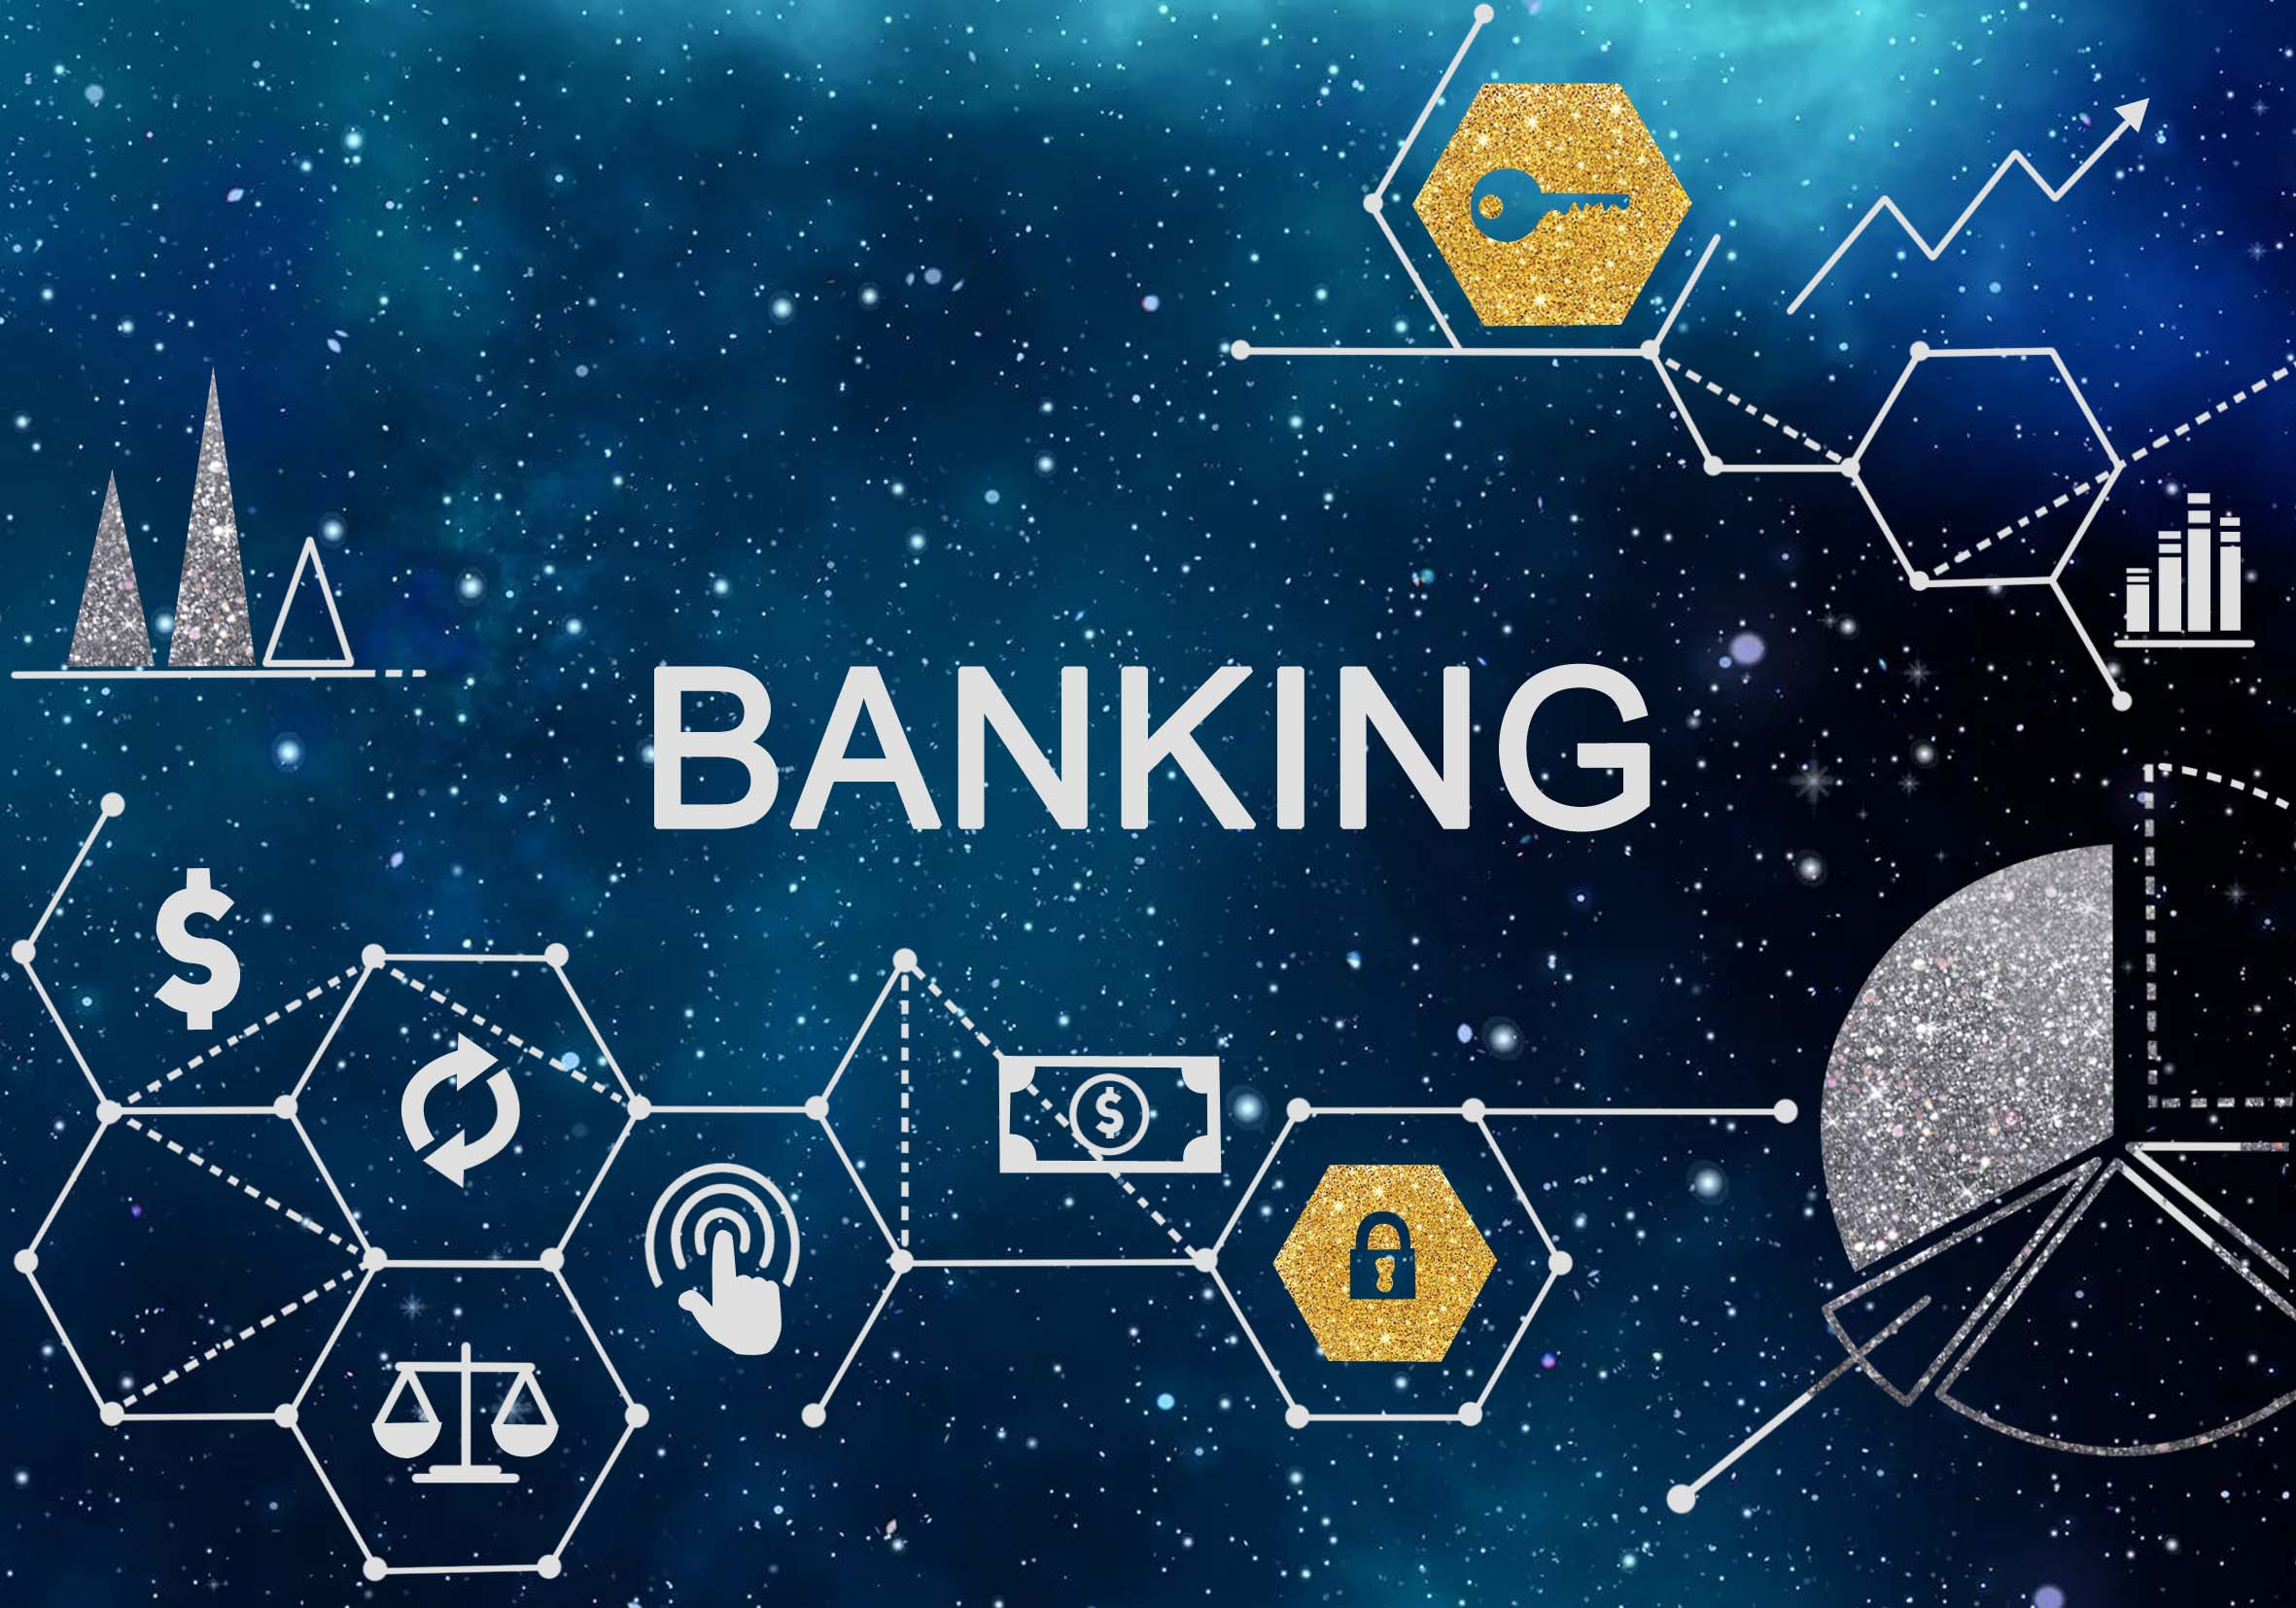 Deltec Bank, Bahamas, Artificial intelligence has thrust upon the digital landscape and financial institutions are seeing the benefits